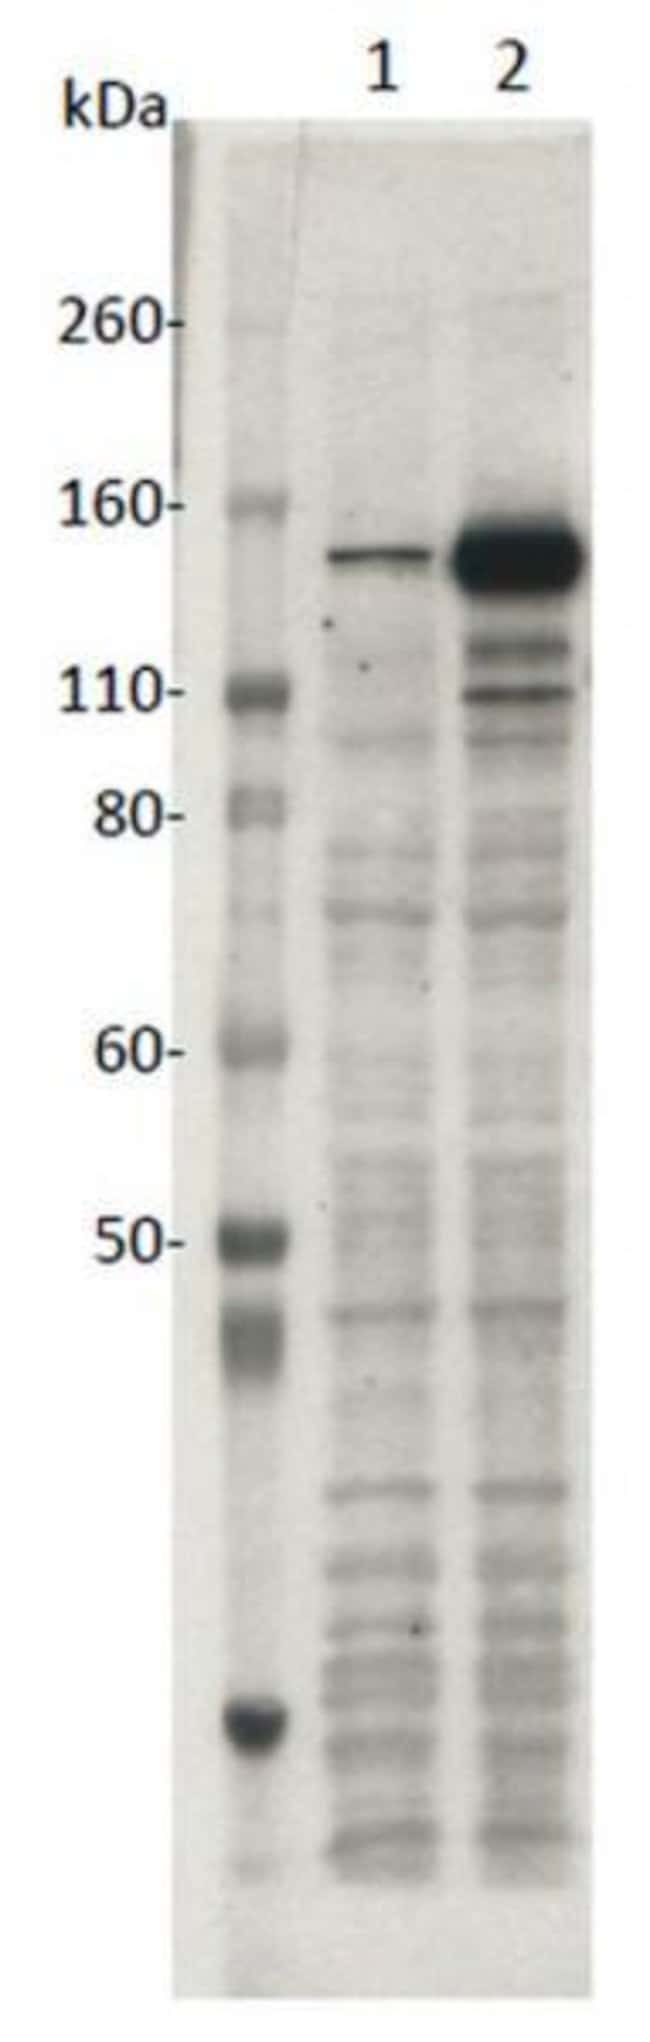 SaCas9 Mouse anti-Human, Many, Mouse, Rat, Clone: 11E7, Active Motif:Antibodies:Primary